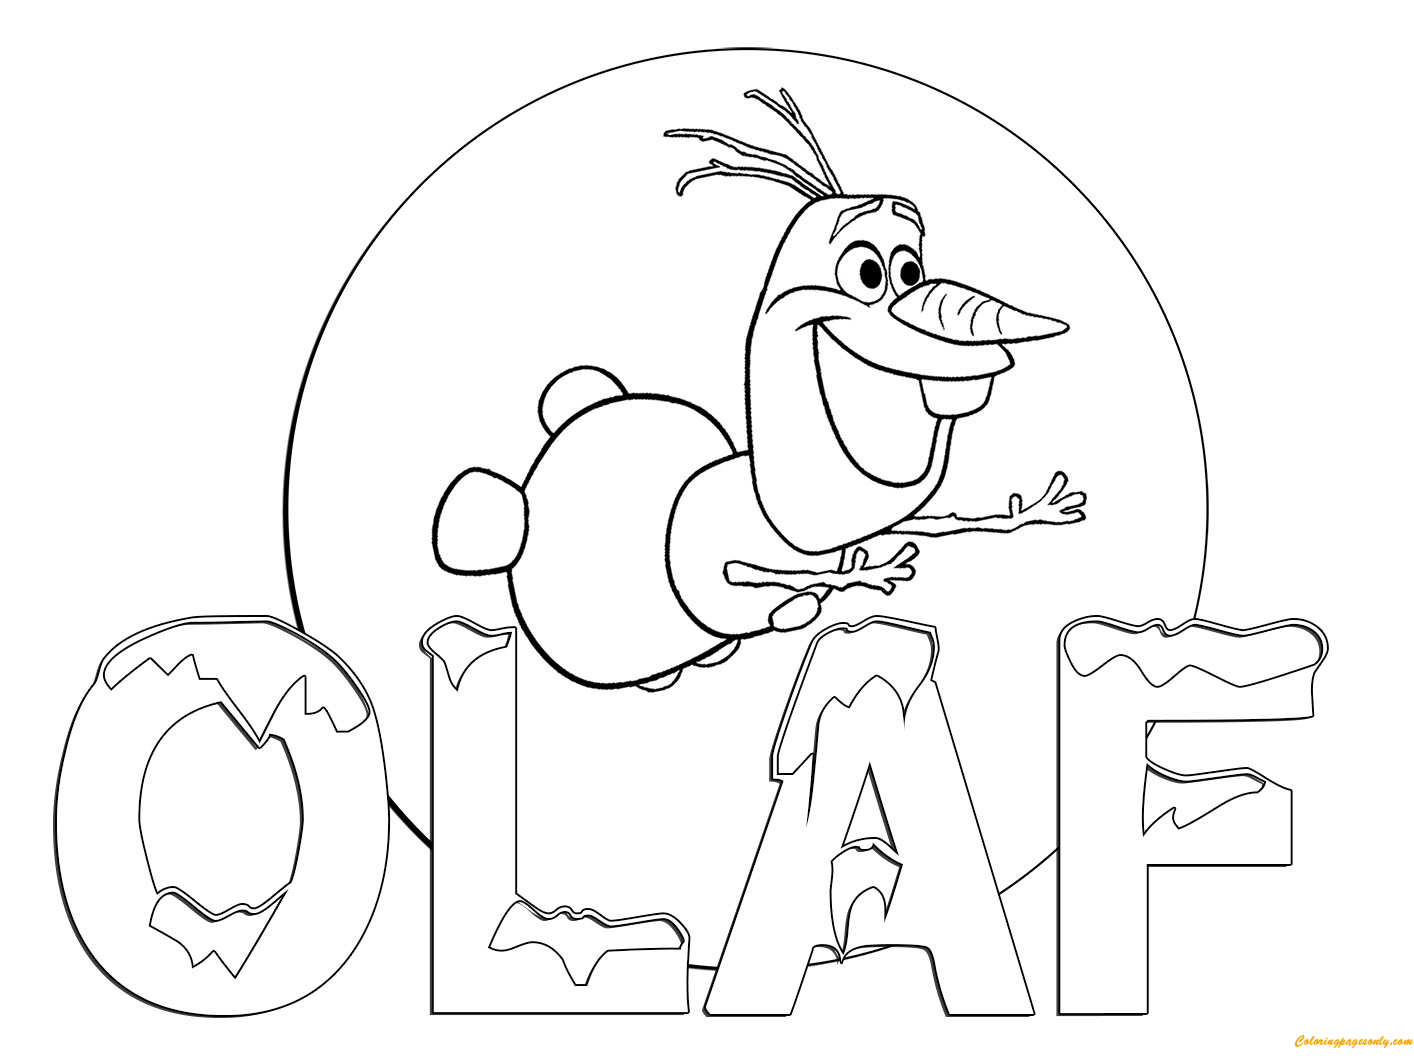 Olaf Coloring Pages Online. Olaf Flying Coloring Page  Free Pages Online